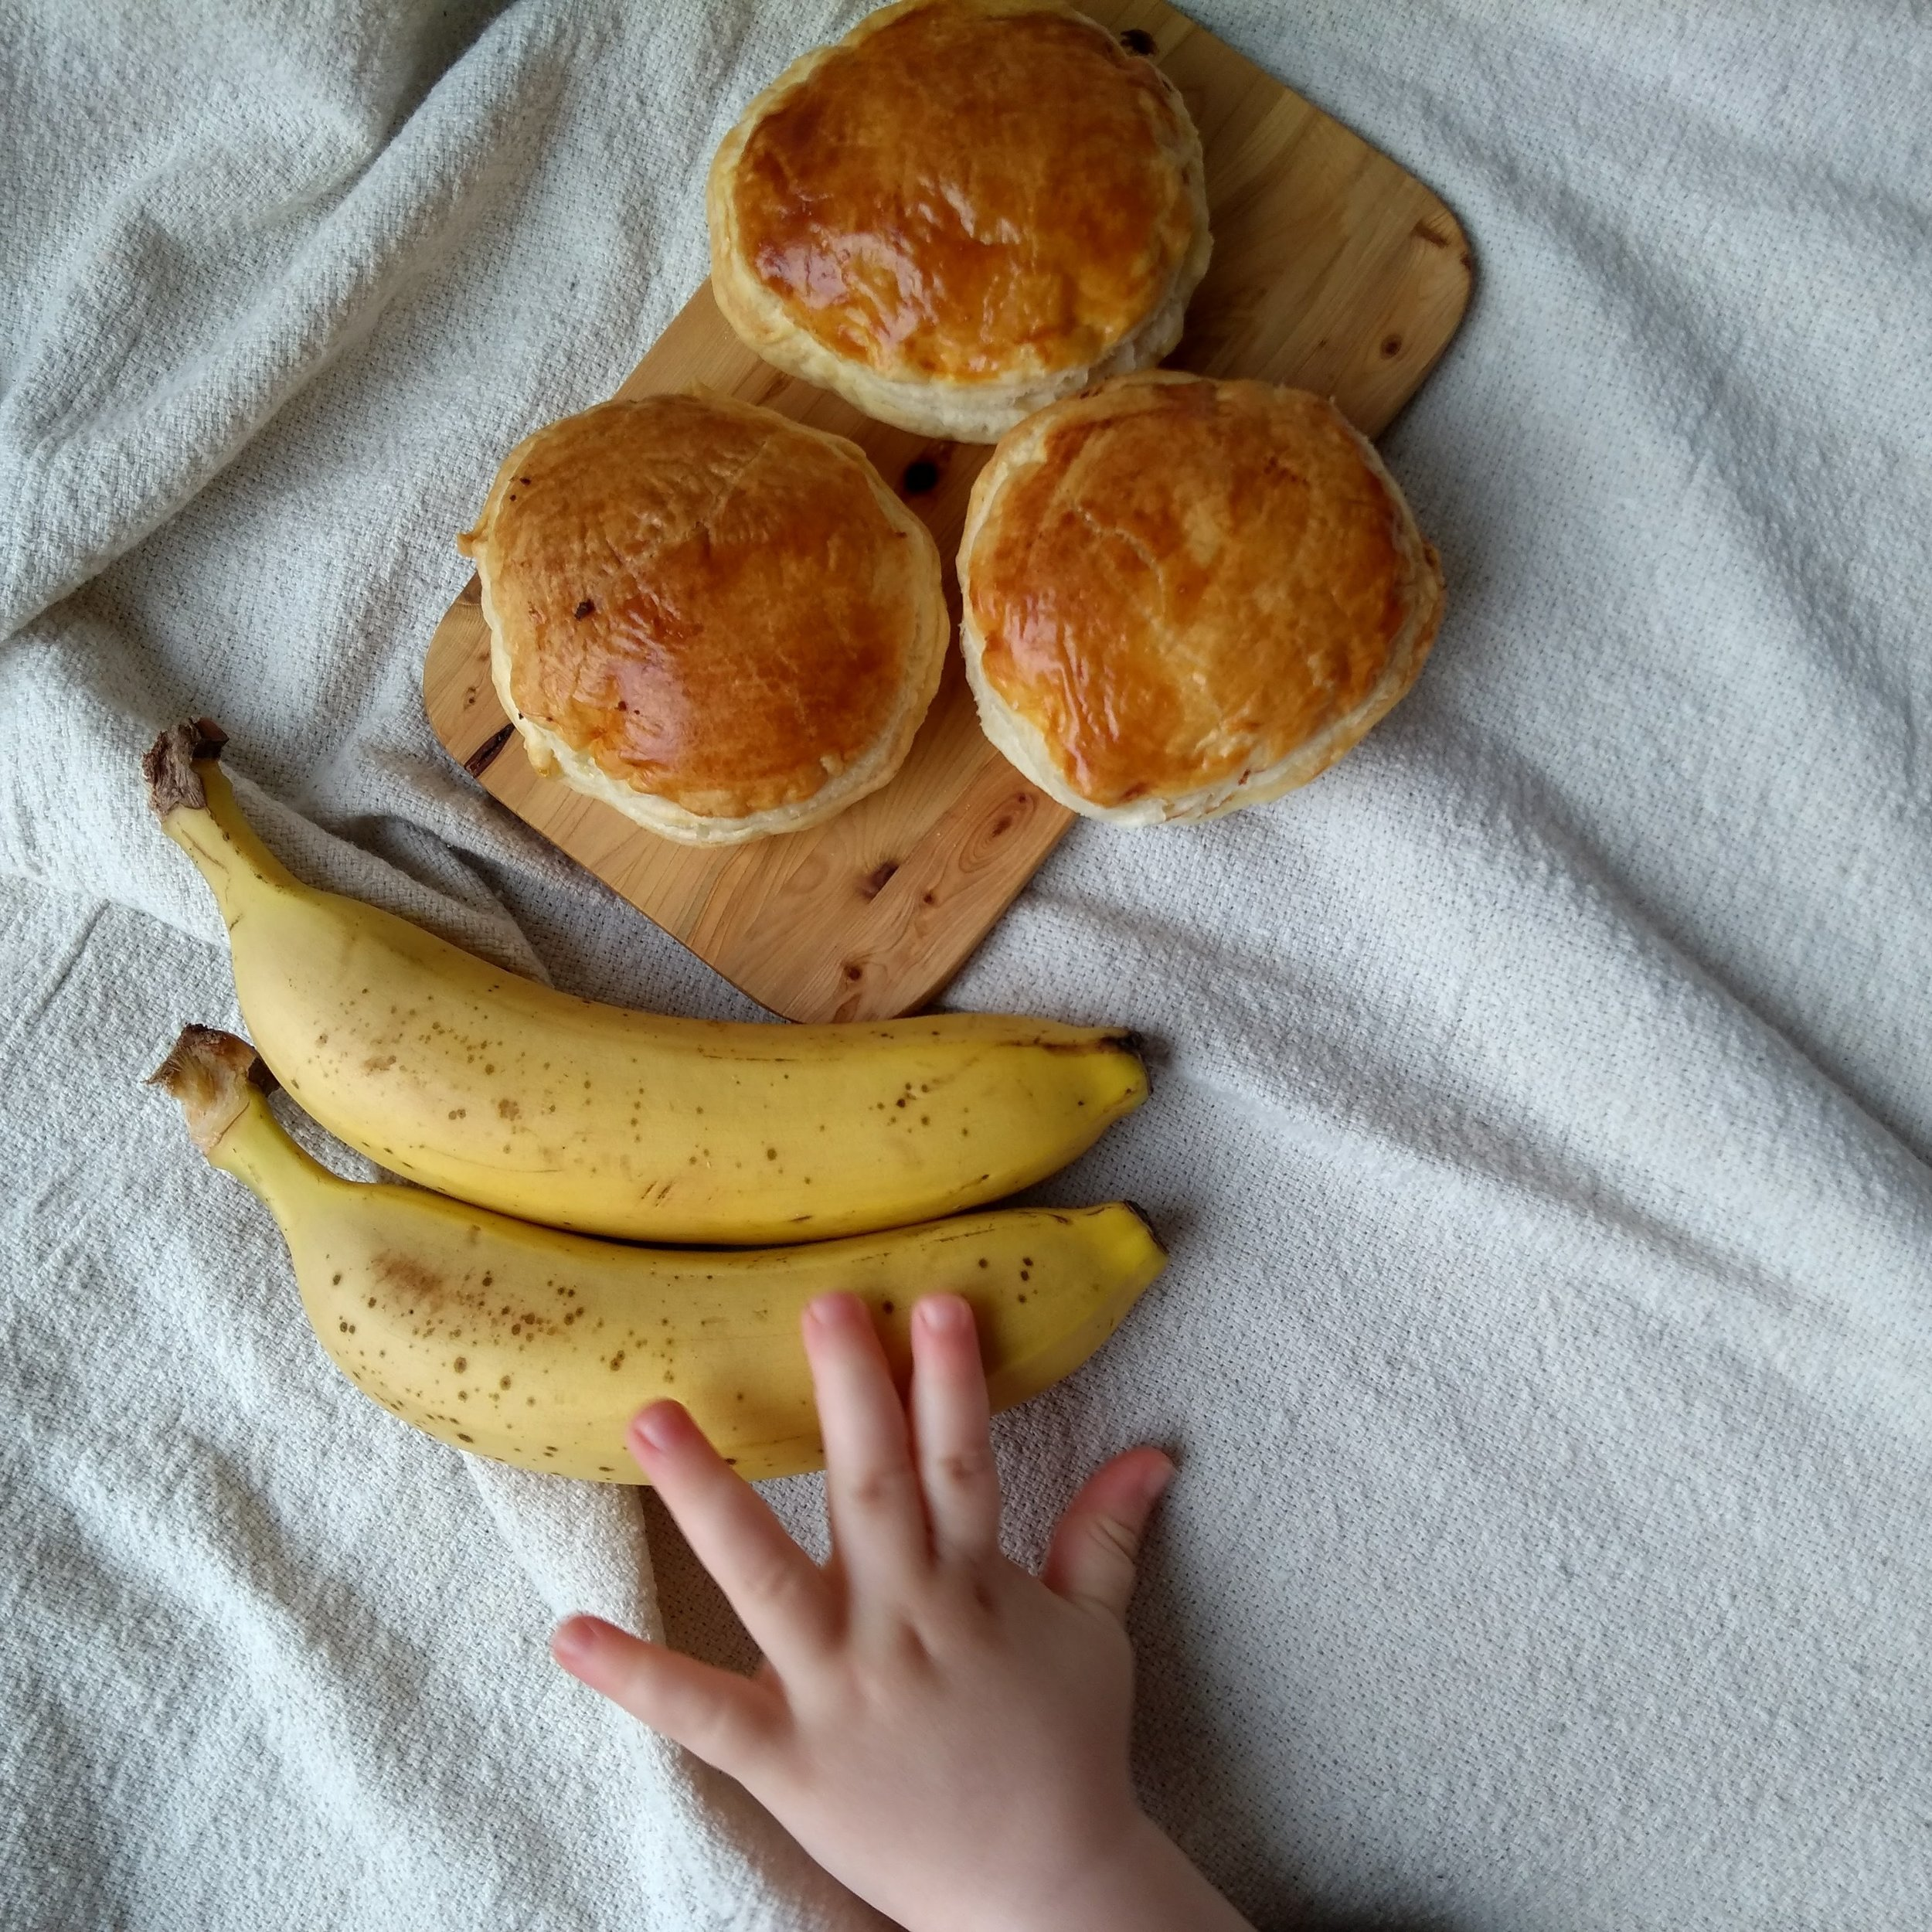 Little hand reaching to some more bananas and ricotta puffs